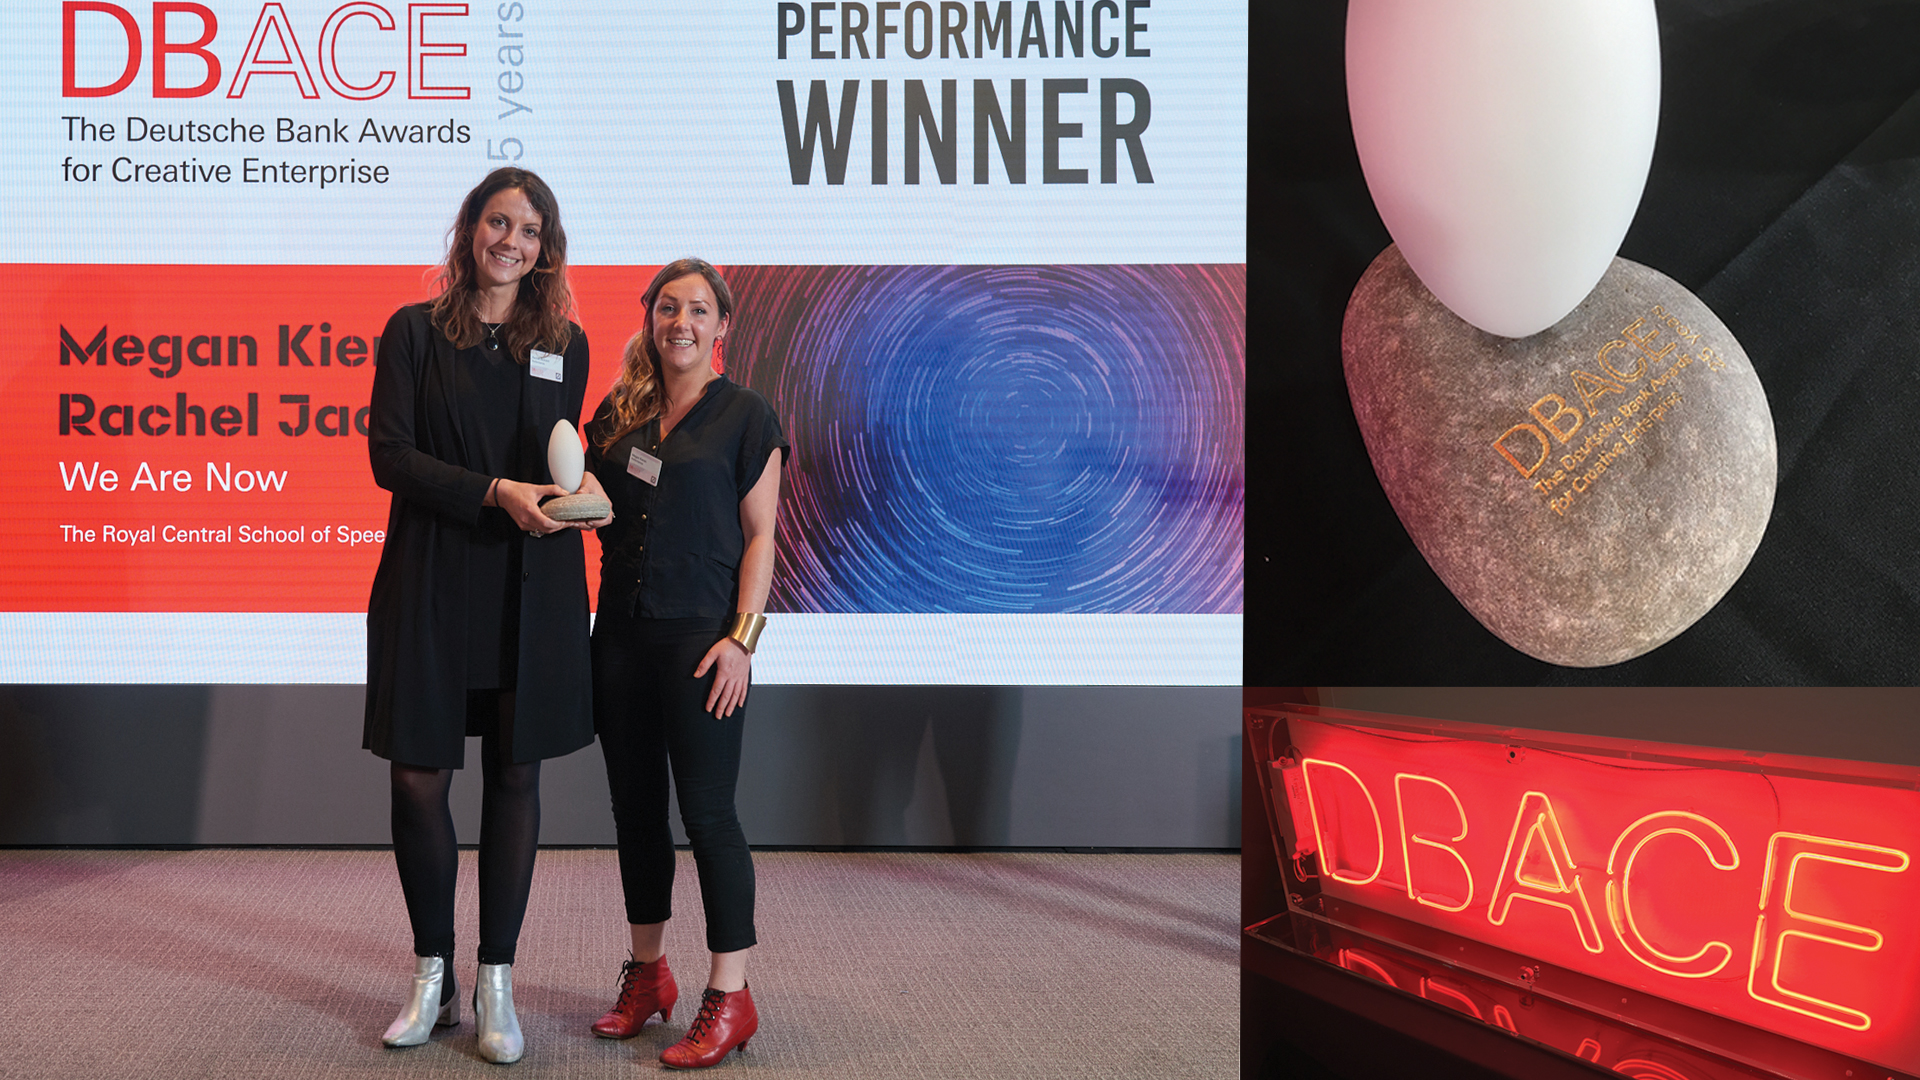 Deutsche Bank DBACE 2017 Awards